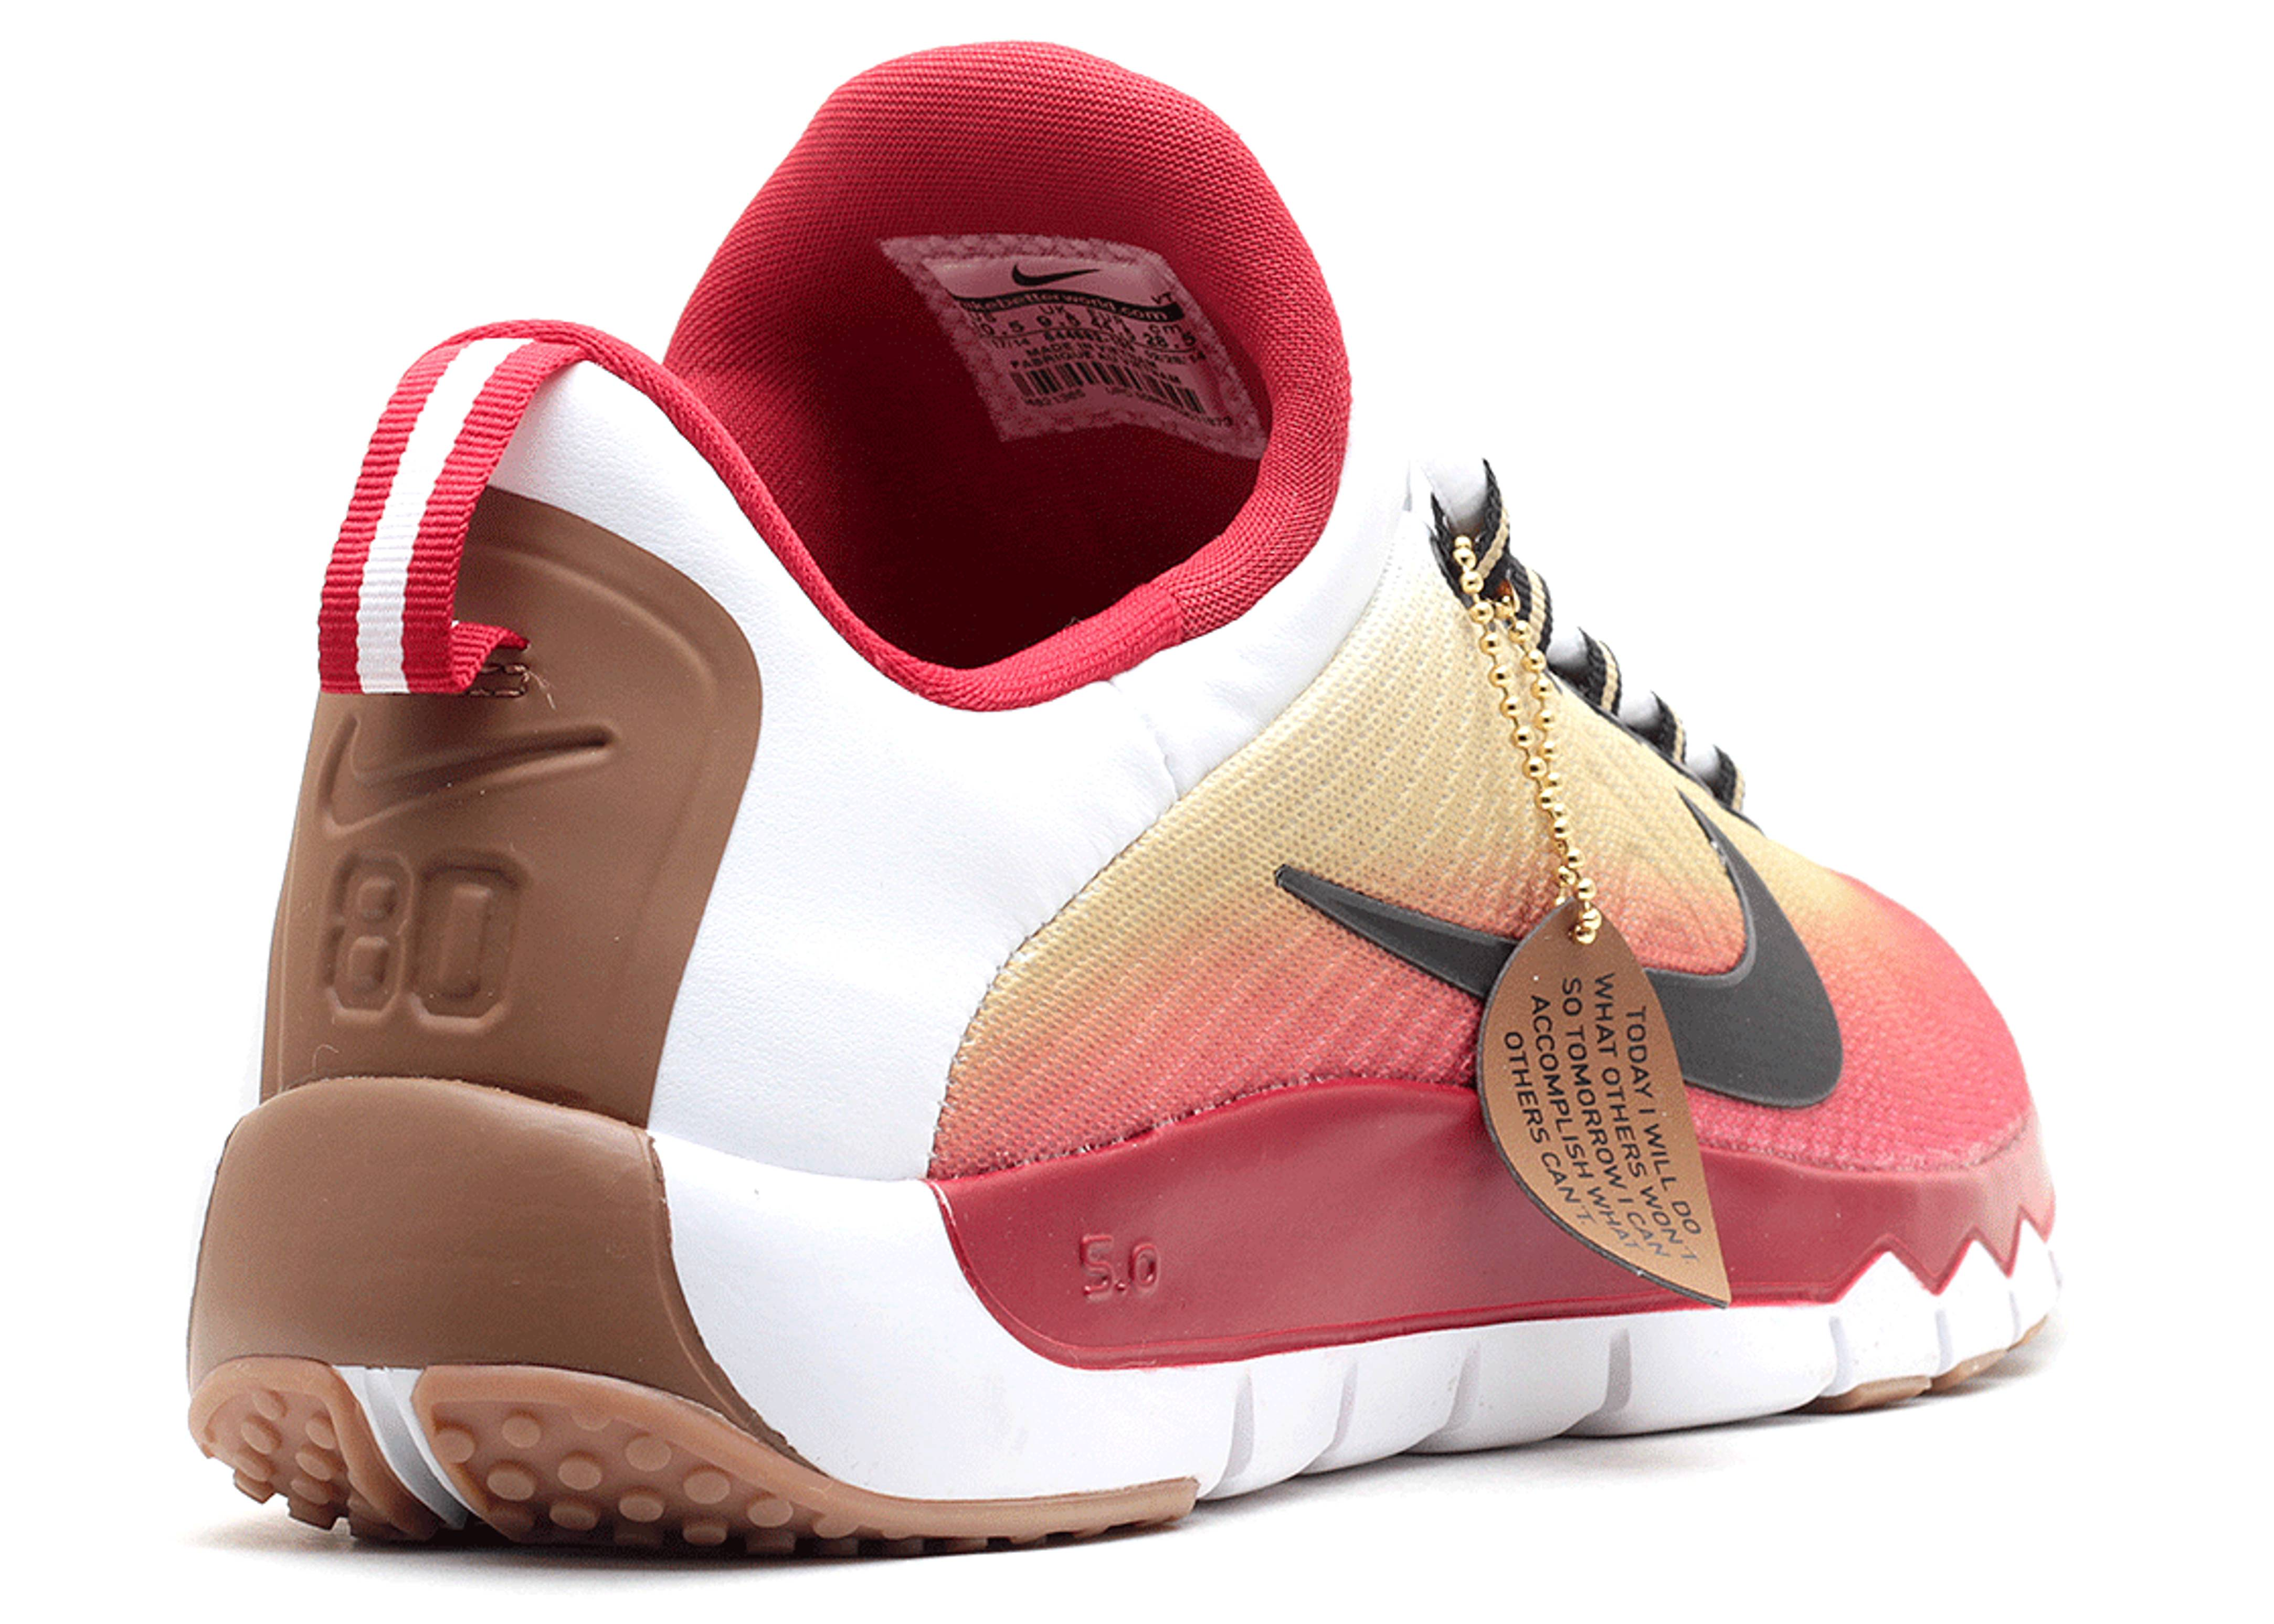 best loved 77585 4bf01 Nike Free Trainer 5.0 49ers